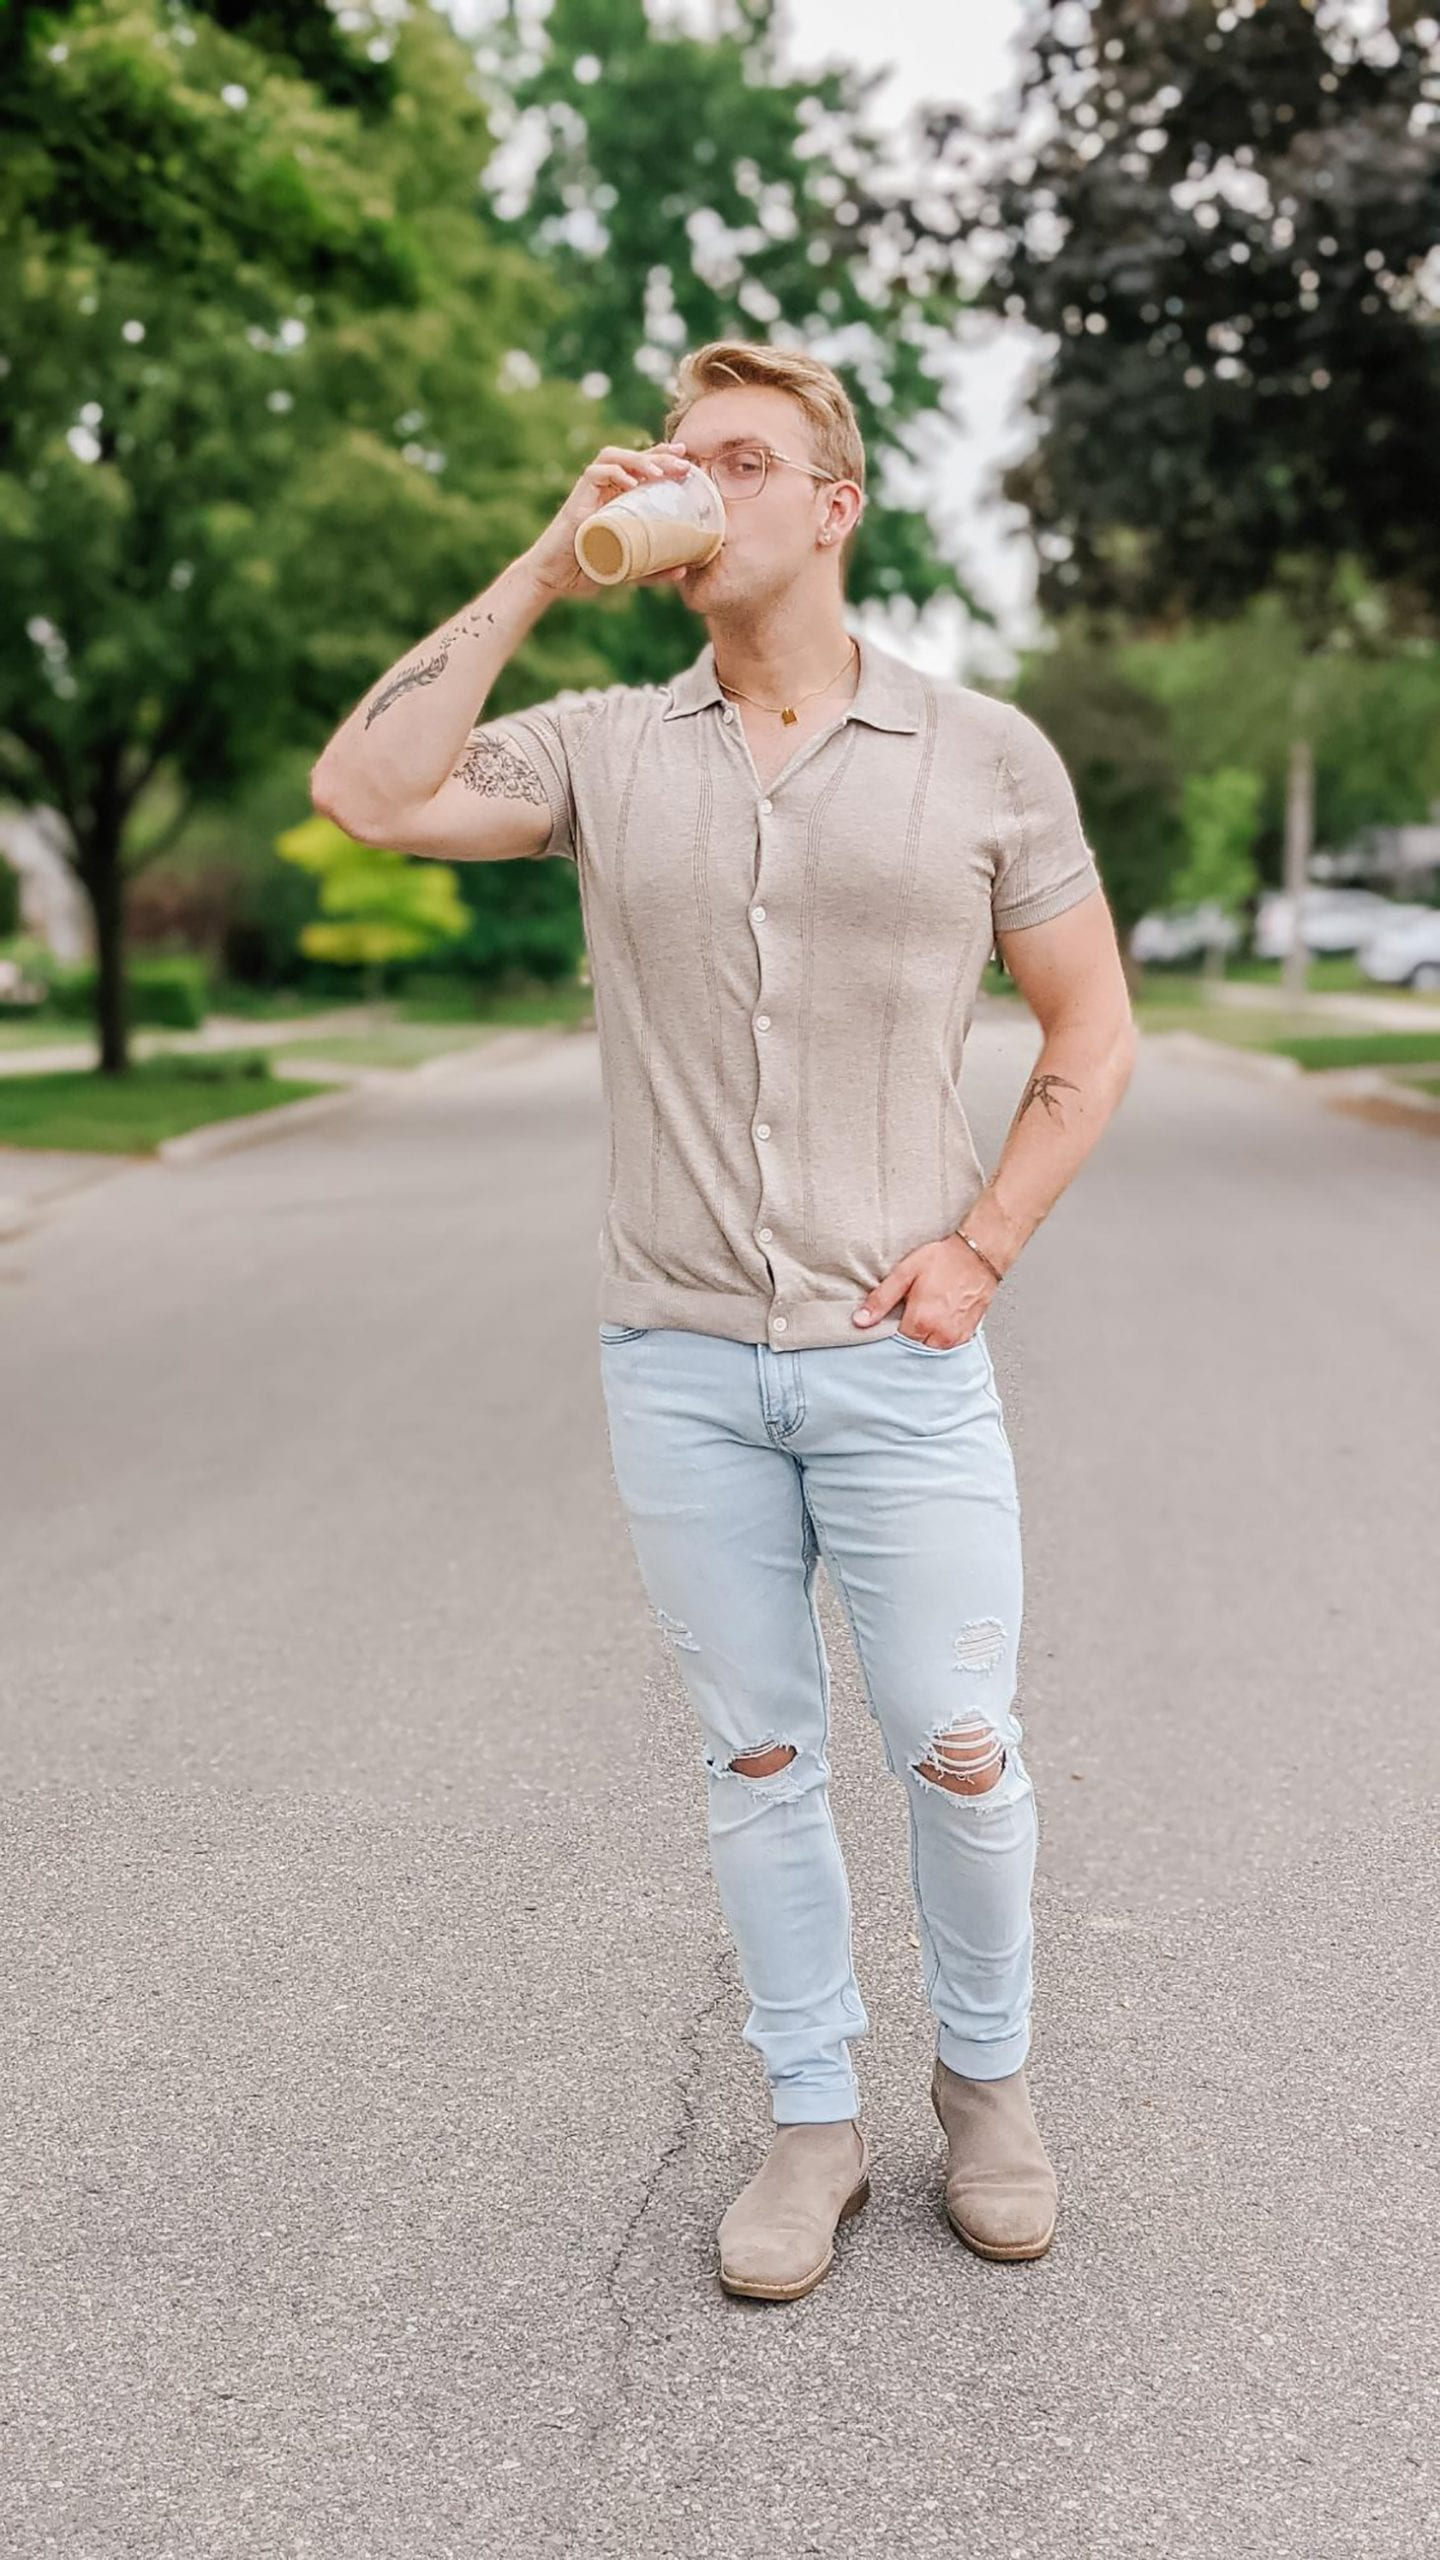 Christoper Allen standing in the middle of a residential street lined with trees, drinking coffee while showing one of his Favourite Summer Looks.